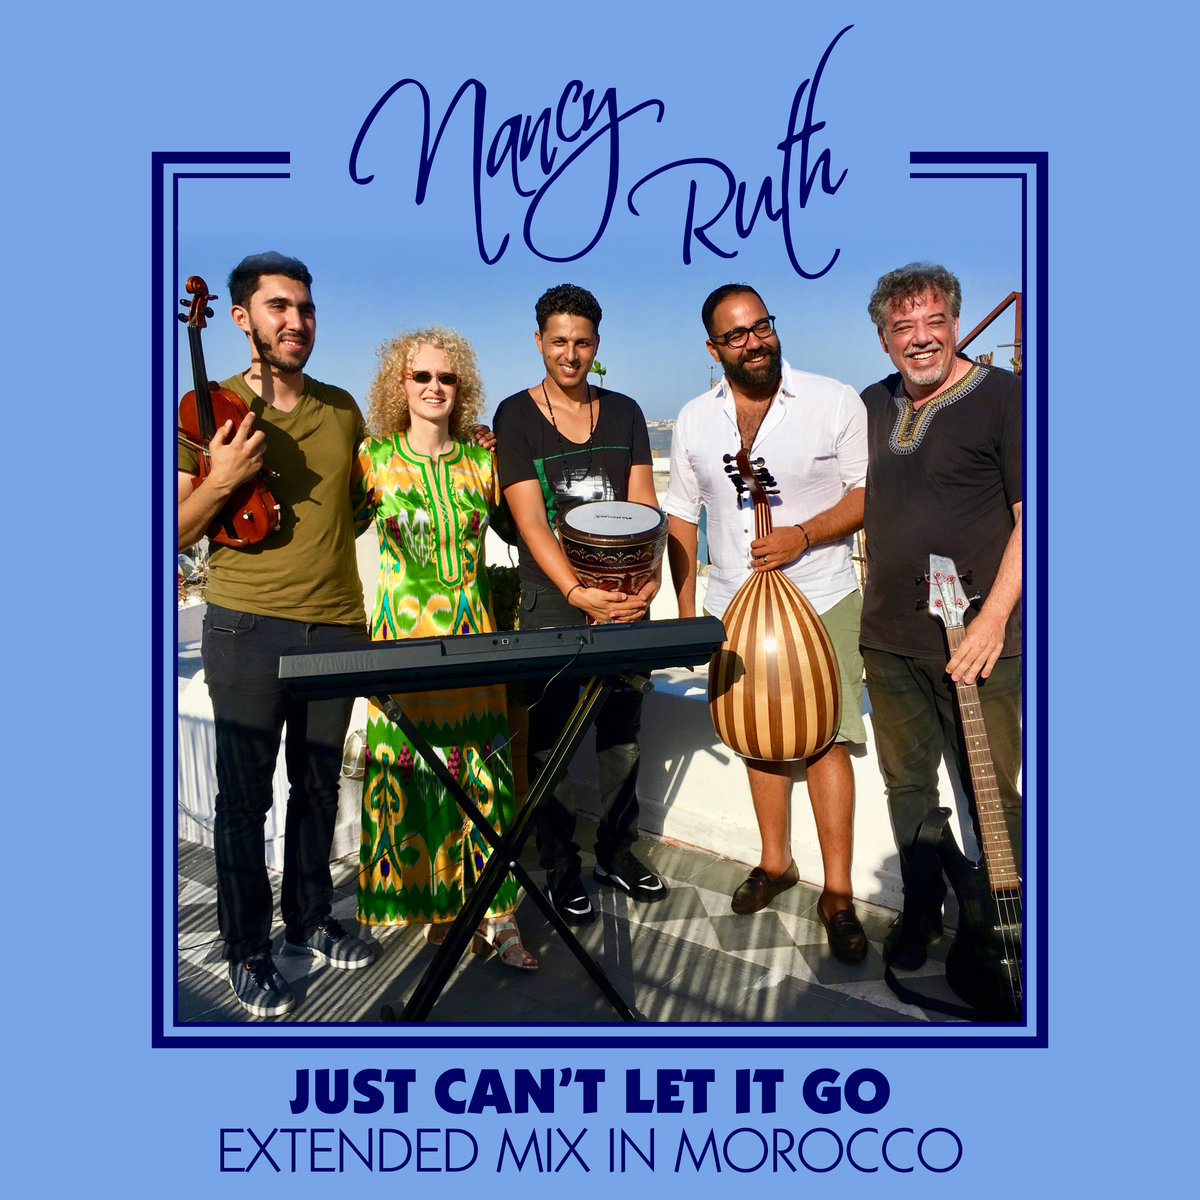 Just Can't Let It Go - Extended Mix in Morocco by Nancy Ruth